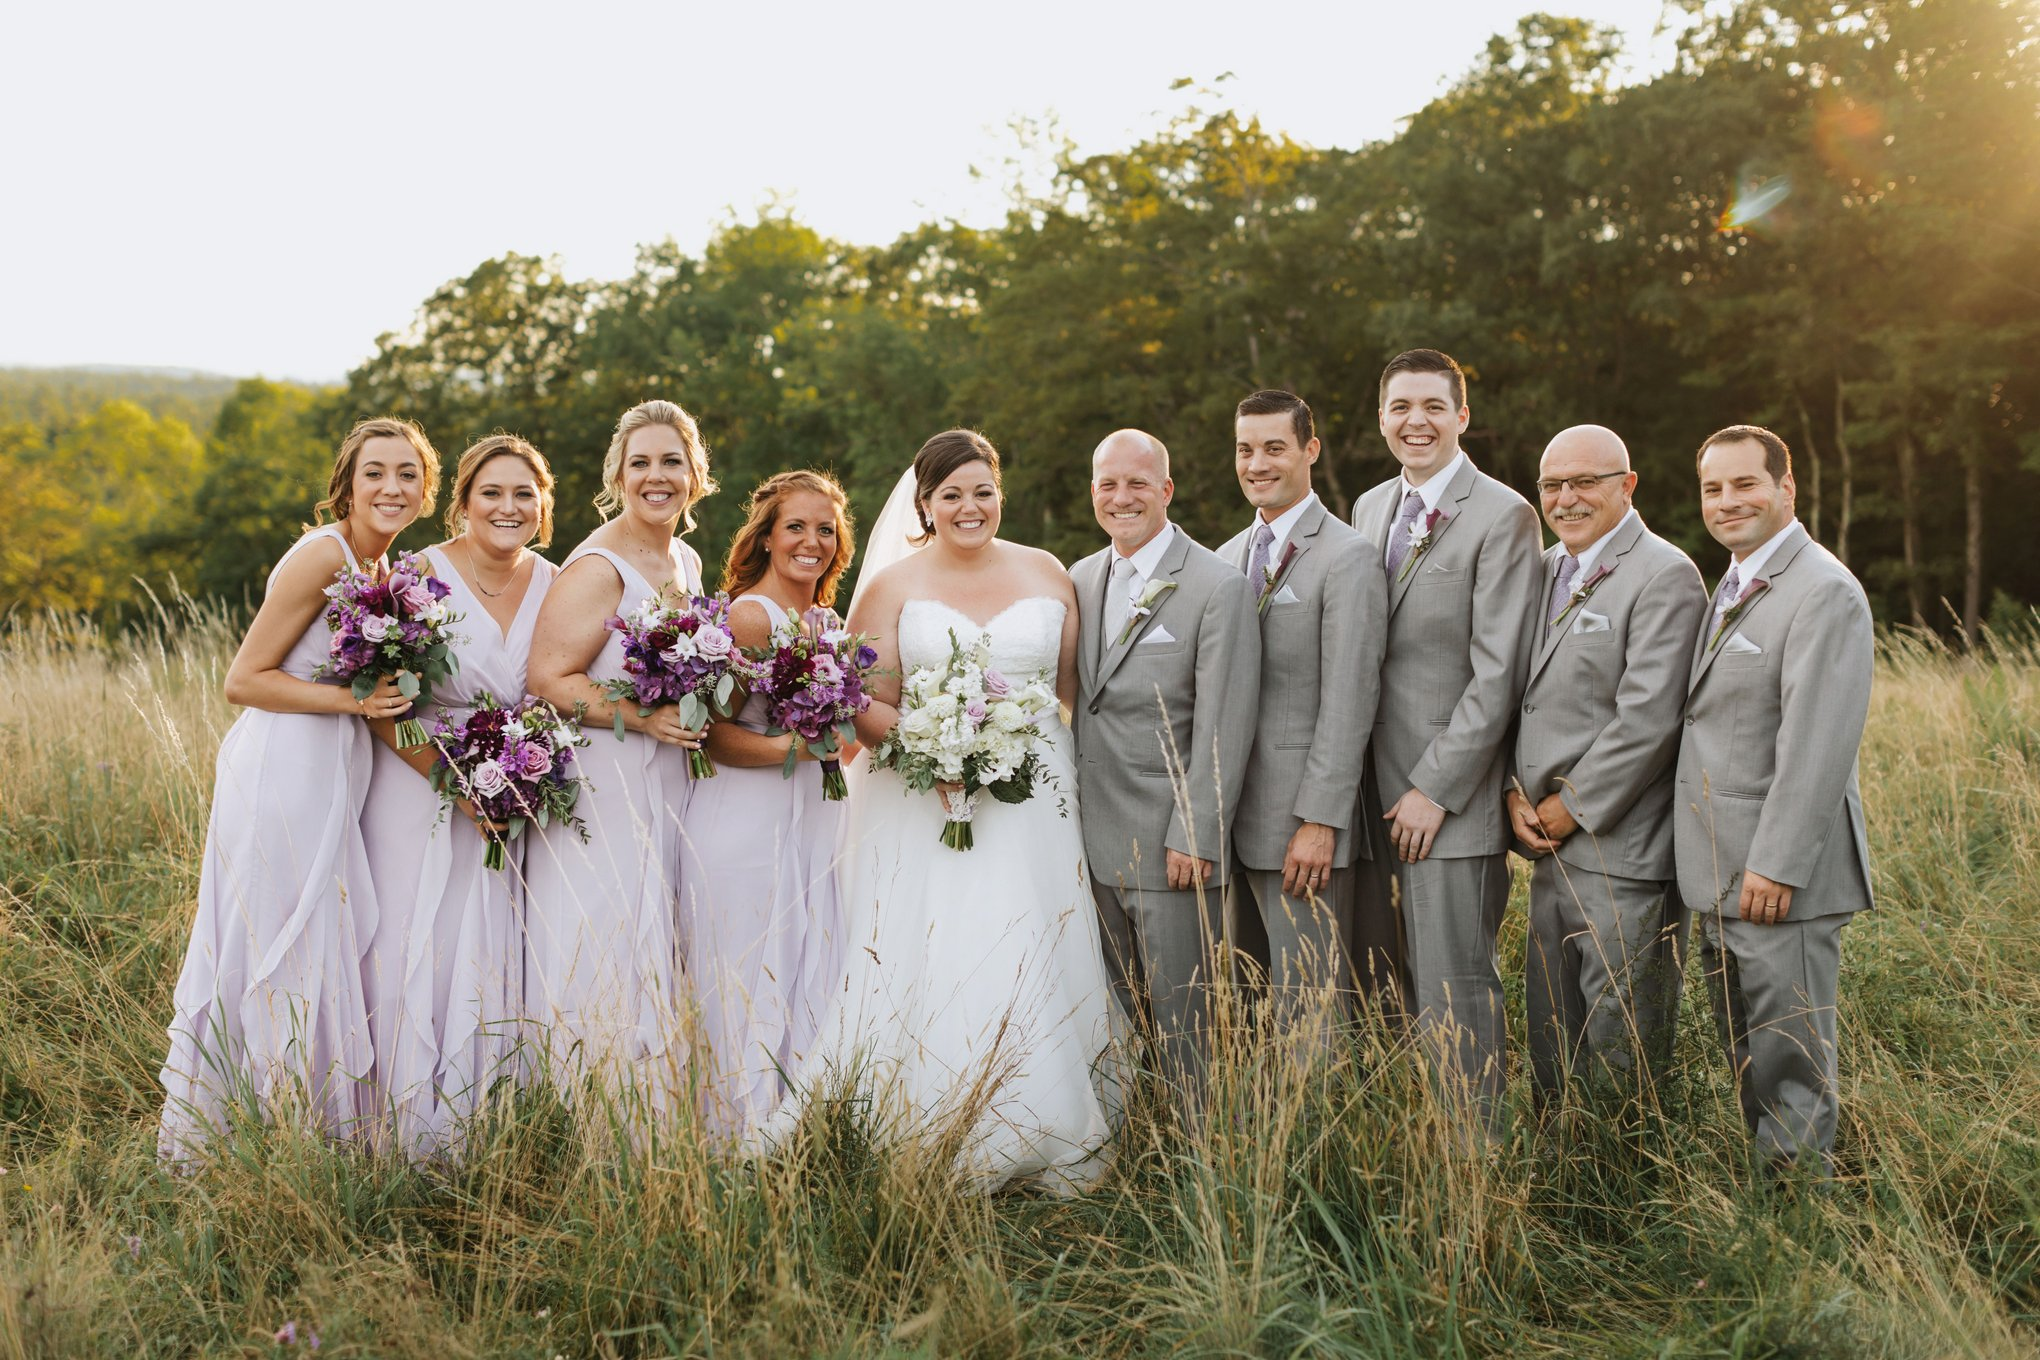 Harrington_Farm_Wedding_Photographer-31.jpg